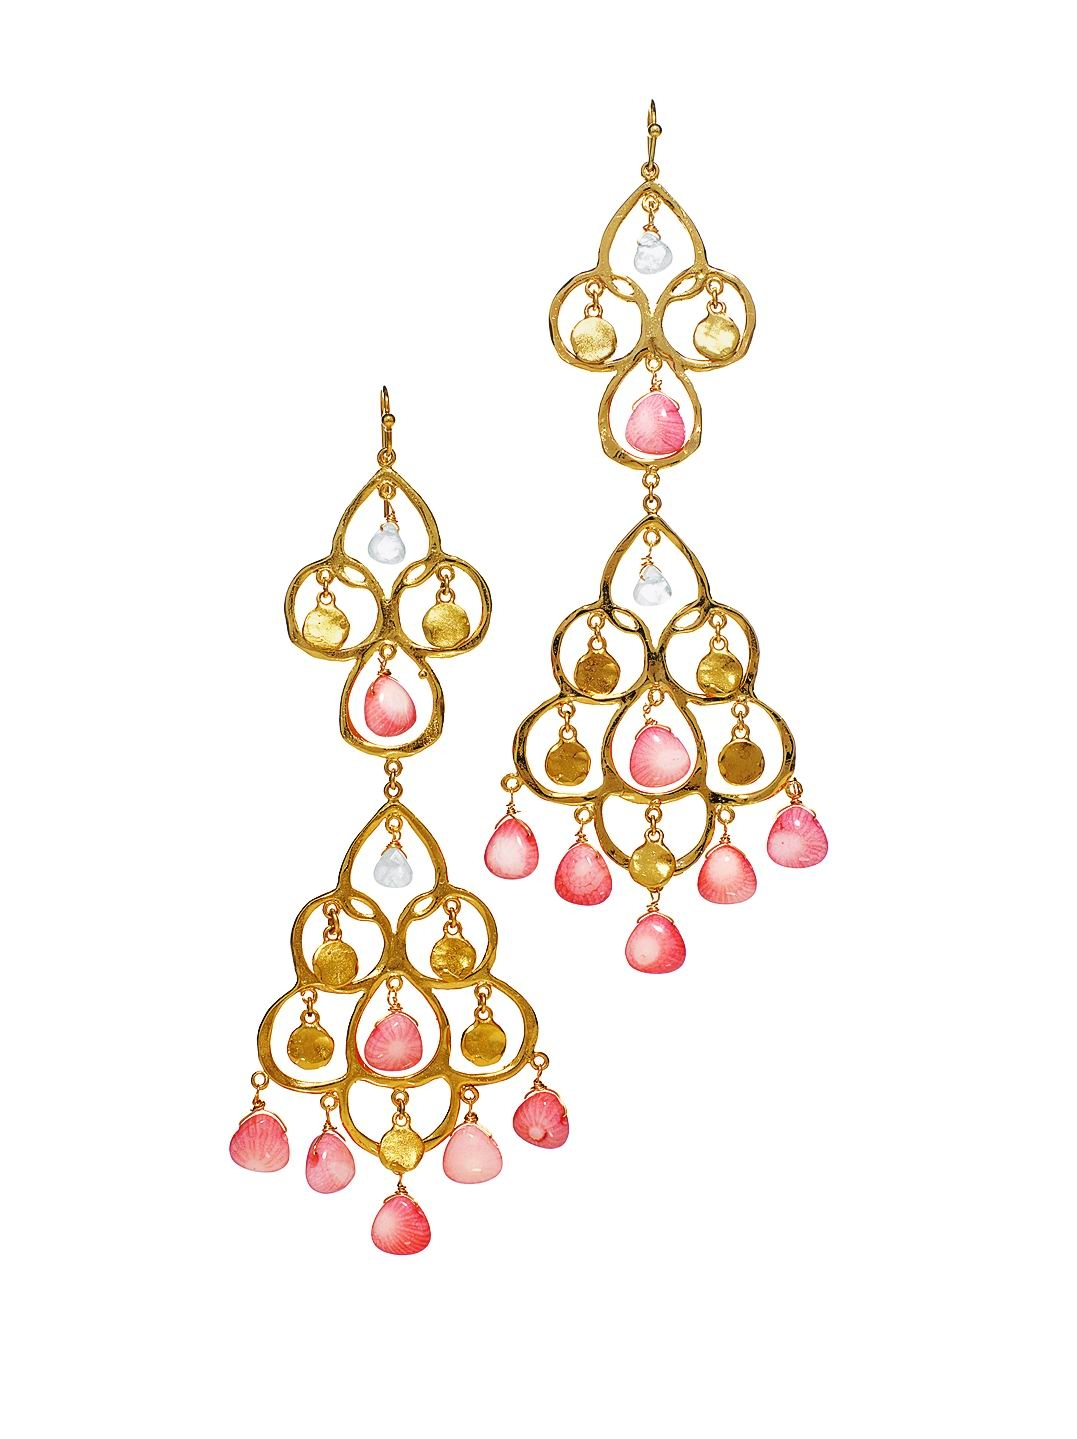 neiman-marcus-earrings